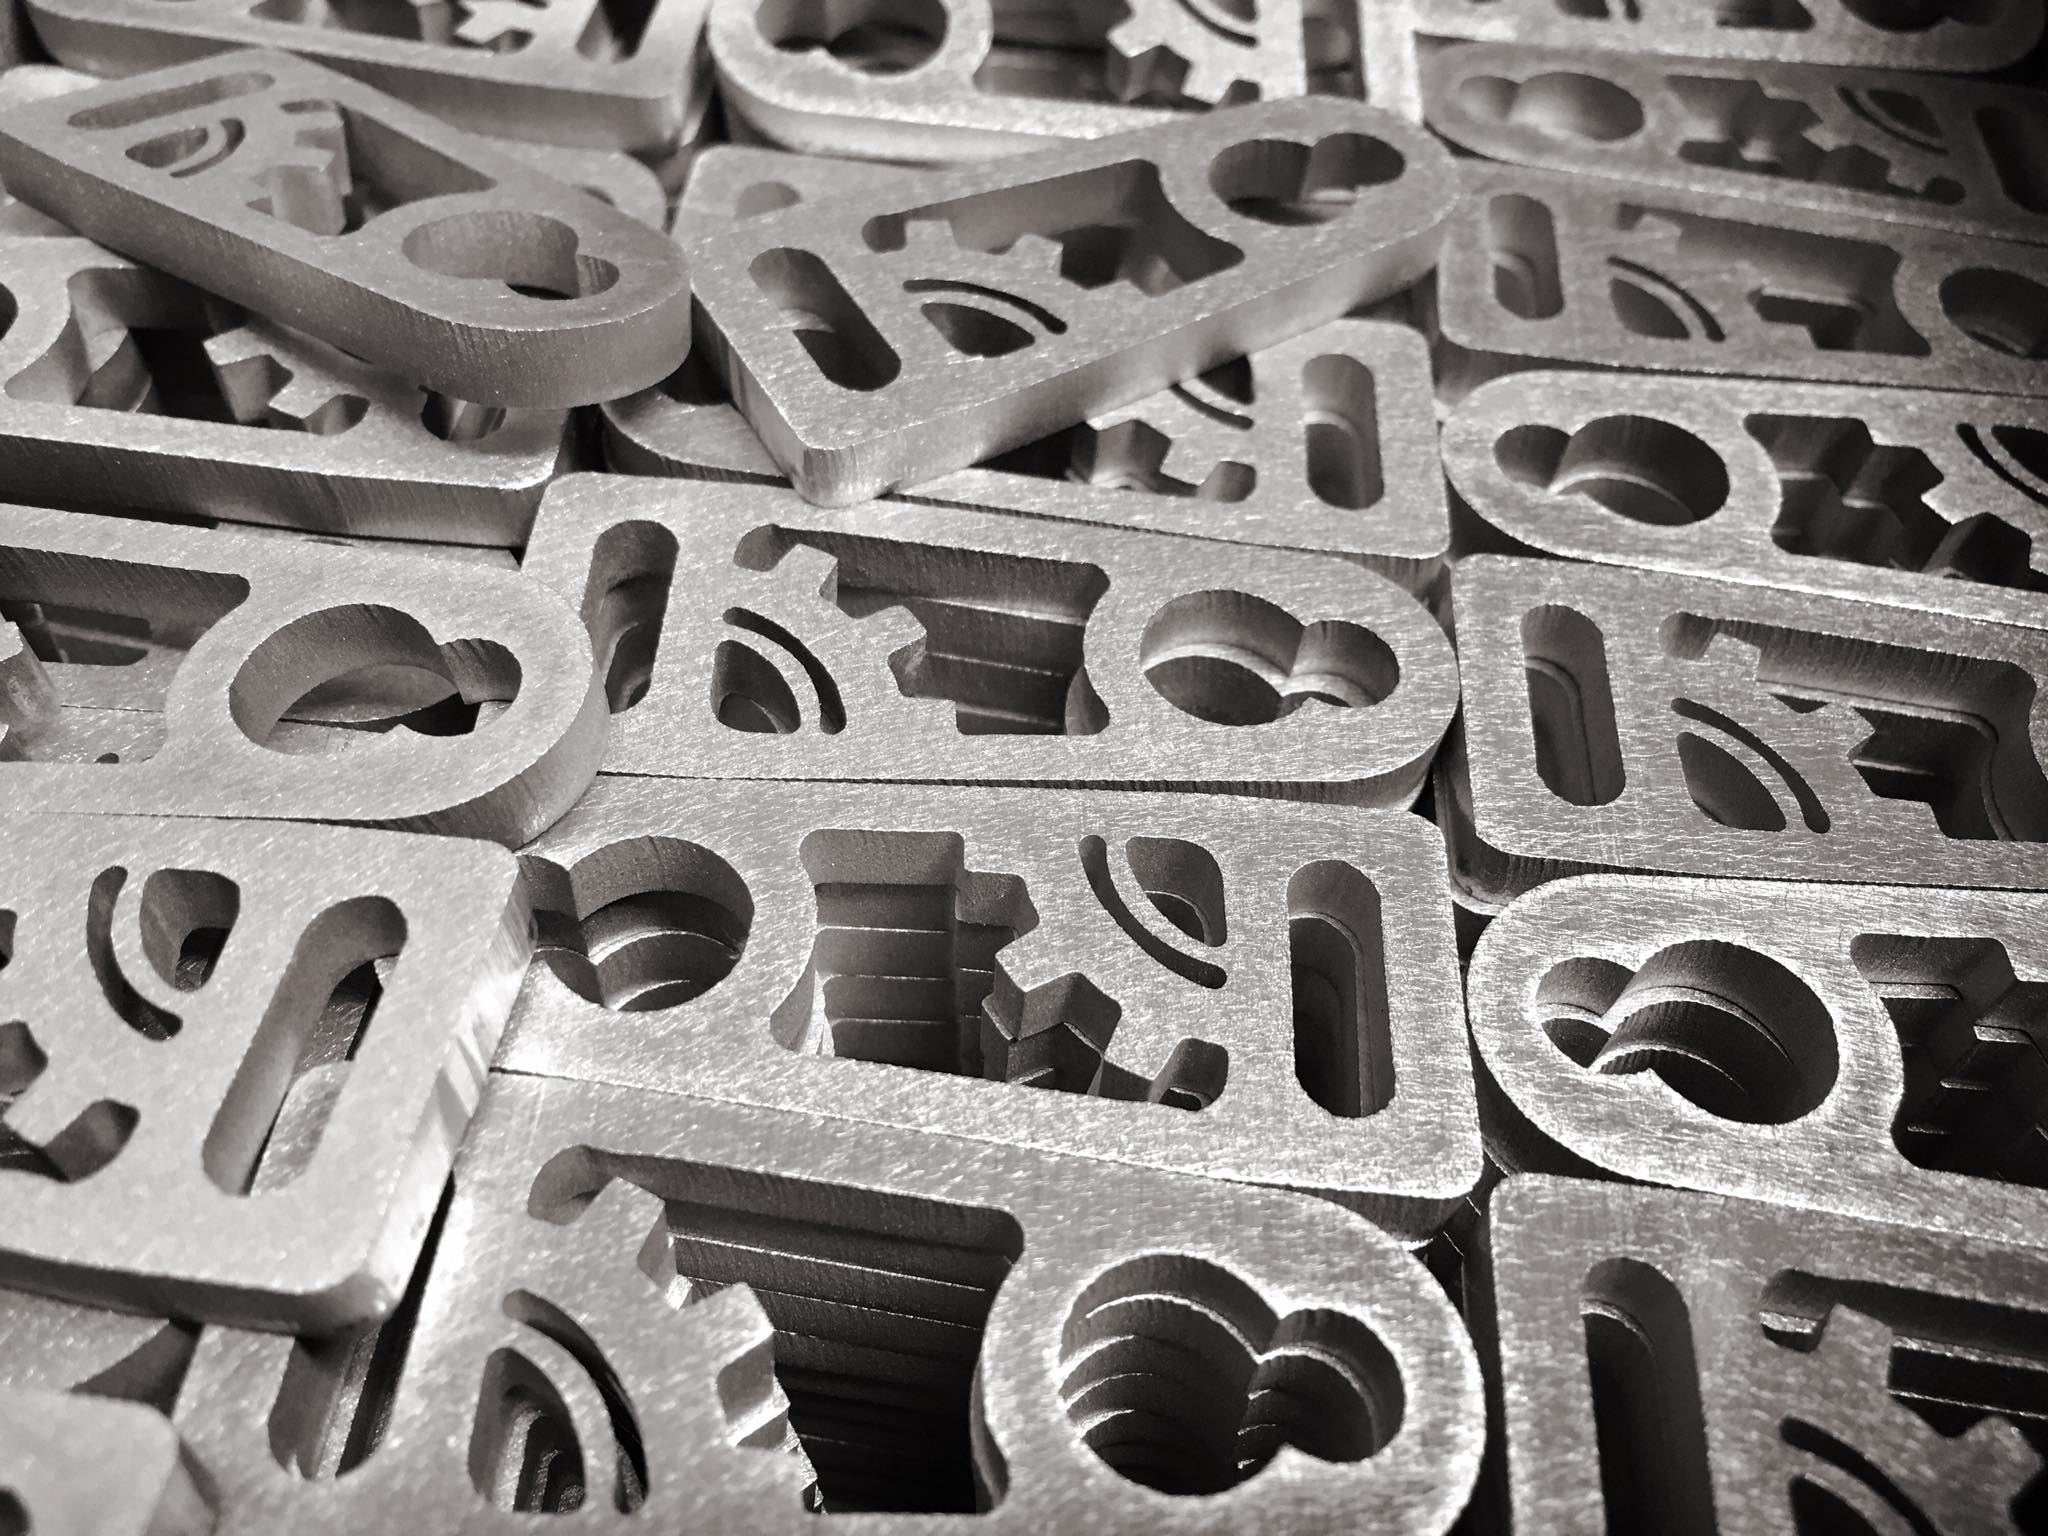 Abrasive CNC Waterjet cut latch pulls in raw form. Headed to tumbling and anodizing!